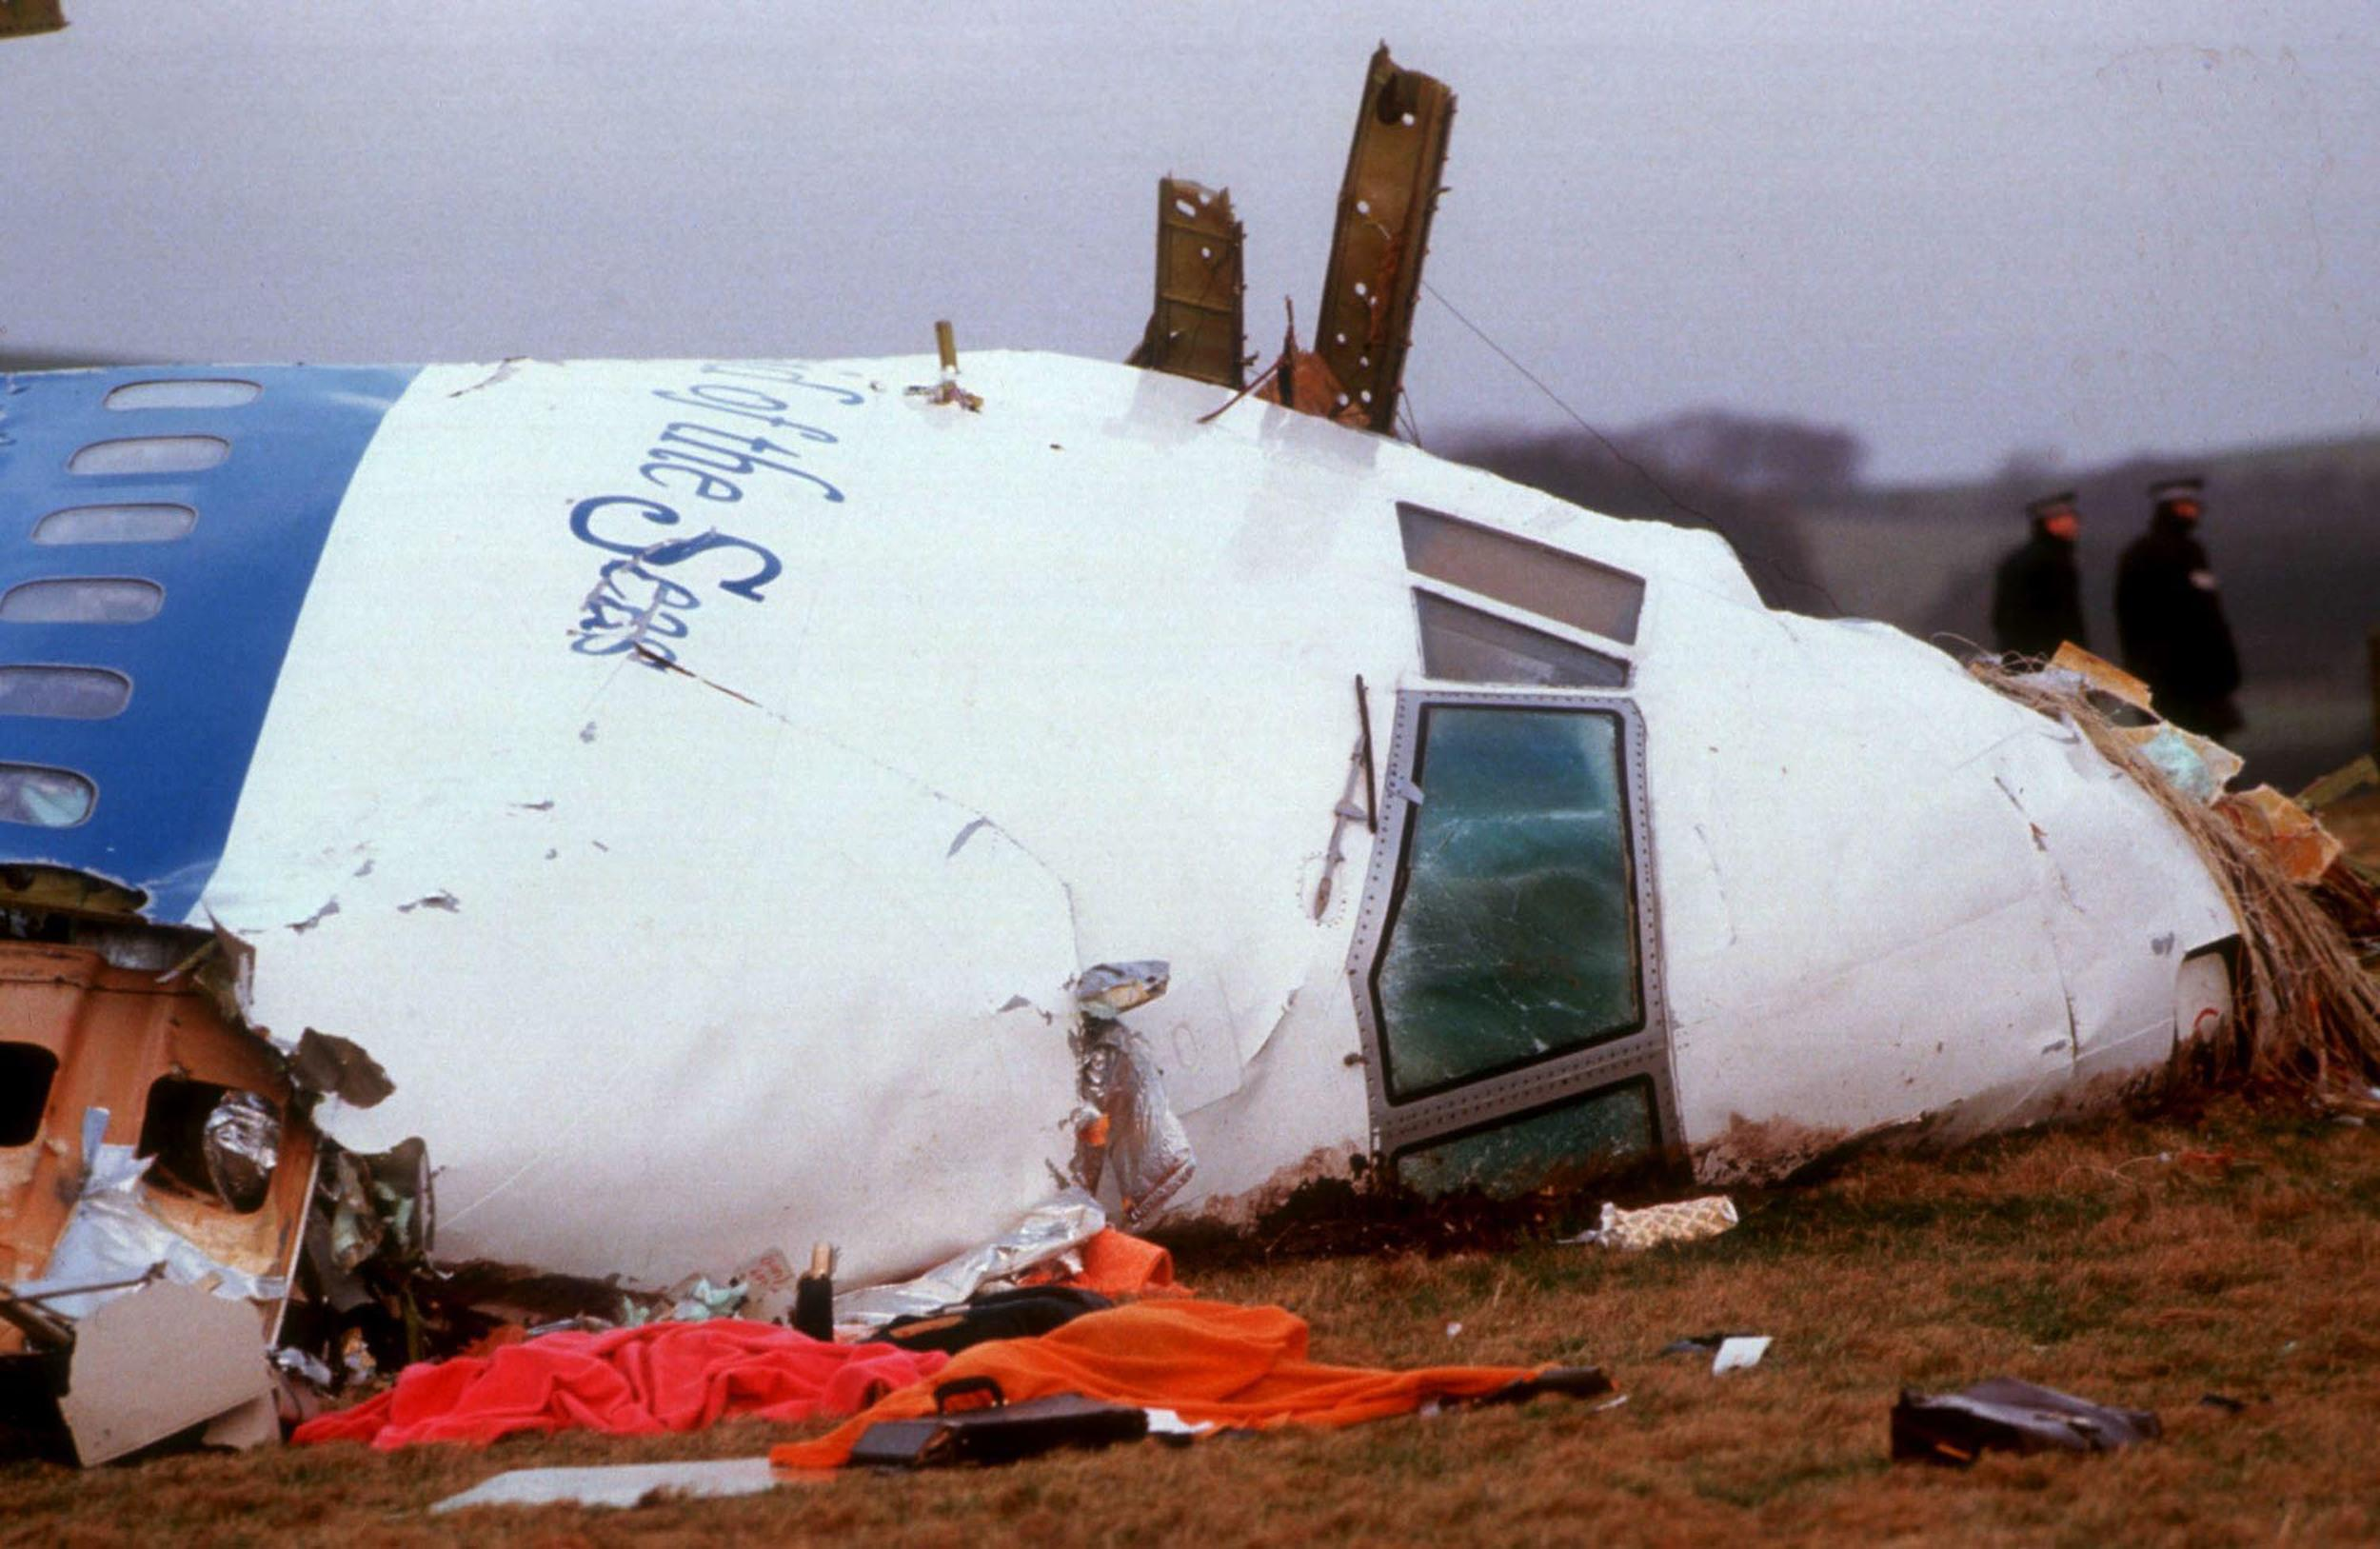 LOCKERBIE, SCOTLAND - DECEMBER 21, 1988:  (FILE PHOTO) Officials inspect the wreckage of Pan Am flight 103 December 21, 1988 in Lockerbie, Scotland. Convicted terrorist Abdelbaset ali al-Megrahi, has been serving a life sentence for the 1988 Pan-AM flight 103 Lockerbie bombing, which killed 270 people. Megrahi, who is terminally ill with prostate cancer has served eight years of a life sentence, and following the decision today, August 20, 2009 has been released on compassionate grounds to go home to spend his remaining days with his family in Libya.(Photo by Georges De Keerle/Getty Images)